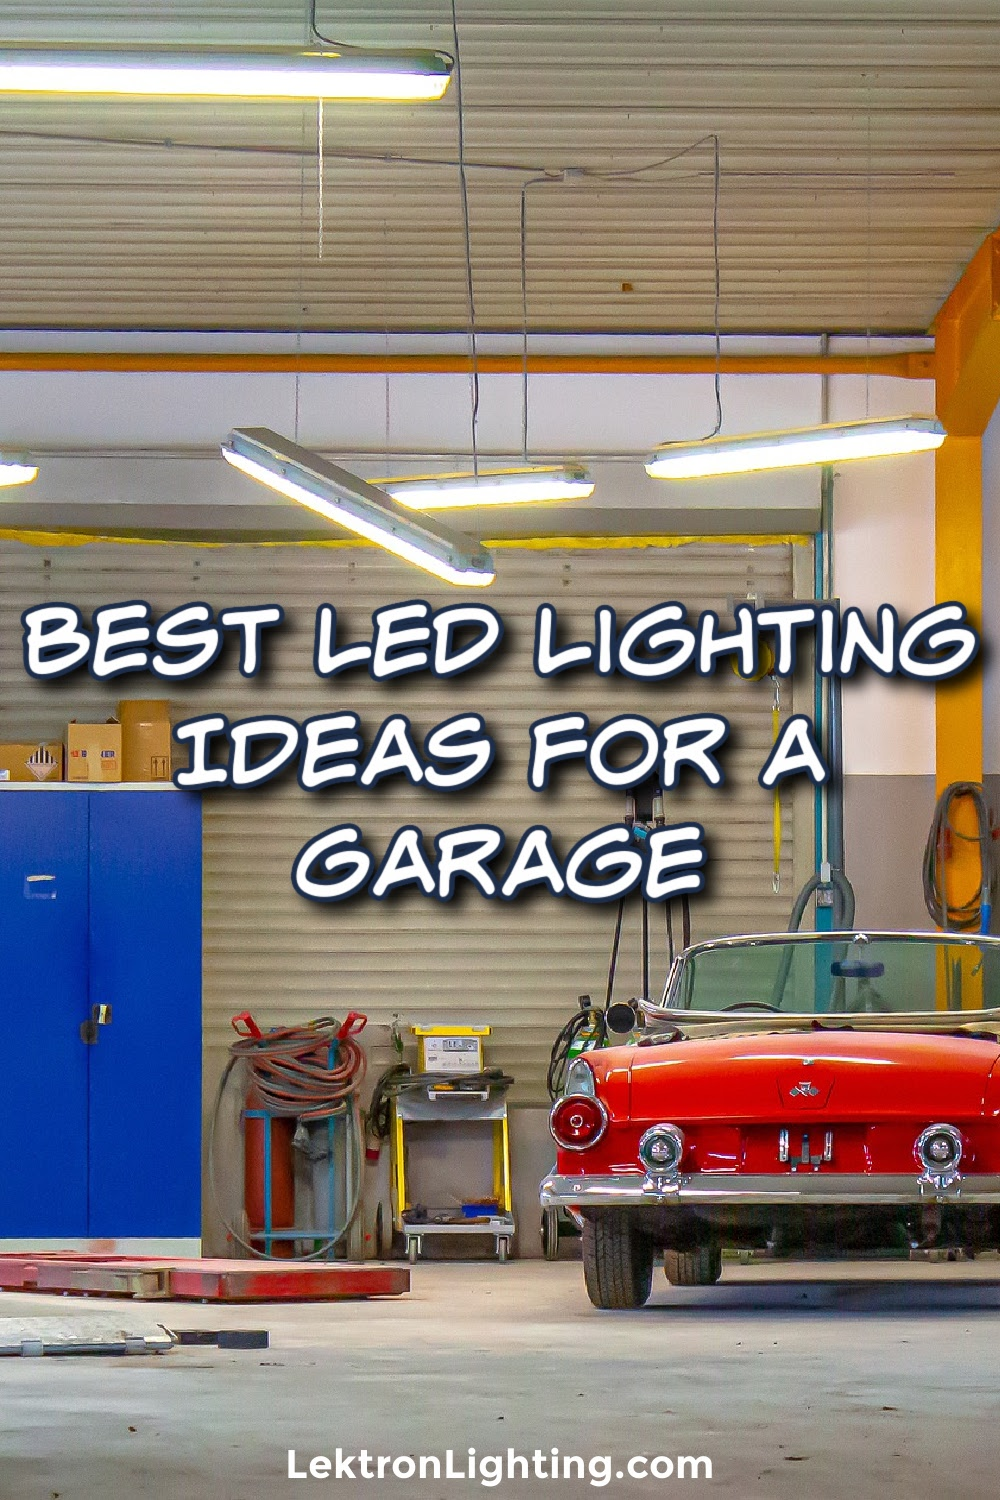 The best LED lighting ideas for a garage can make It easier to work without having an intern hold the light for you.